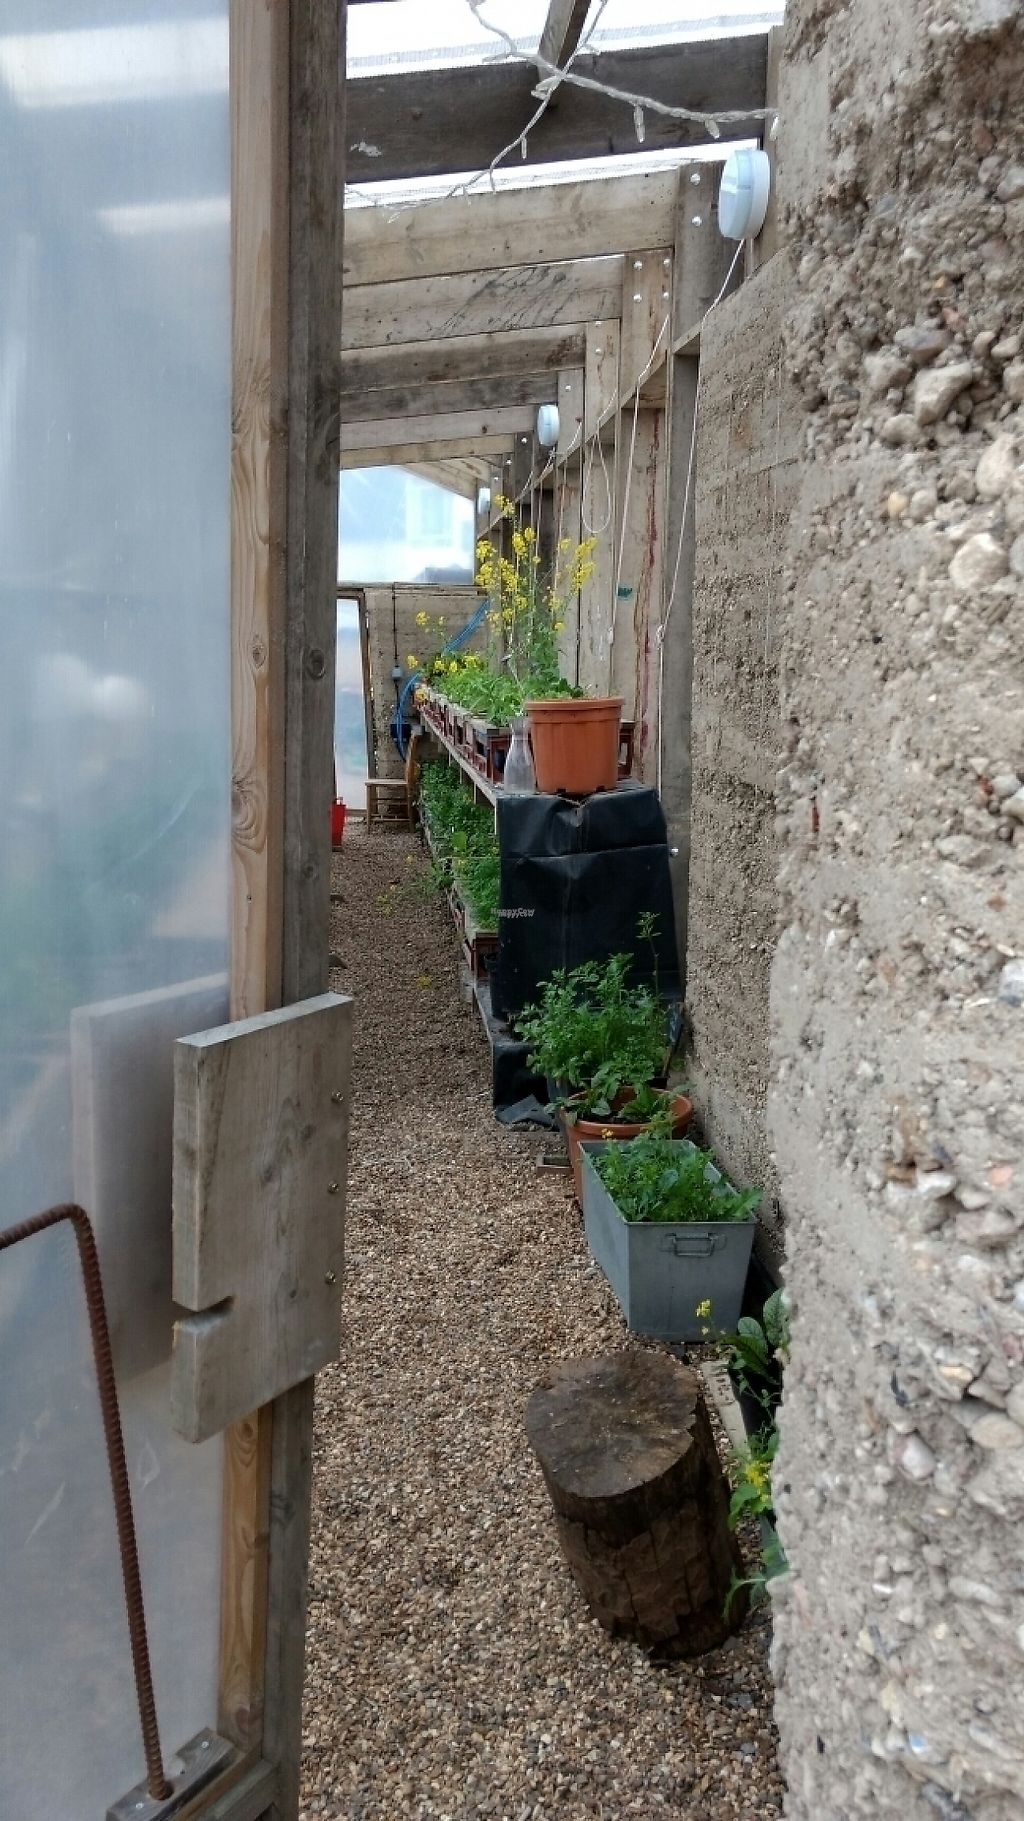 """Photo of Skip Garden Kitchen  by <a href=""""/members/profile/craigmc"""">craigmc</a> <br/>herbs <br/> March 18, 2017  - <a href='/contact/abuse/image/61559/237920'>Report</a>"""